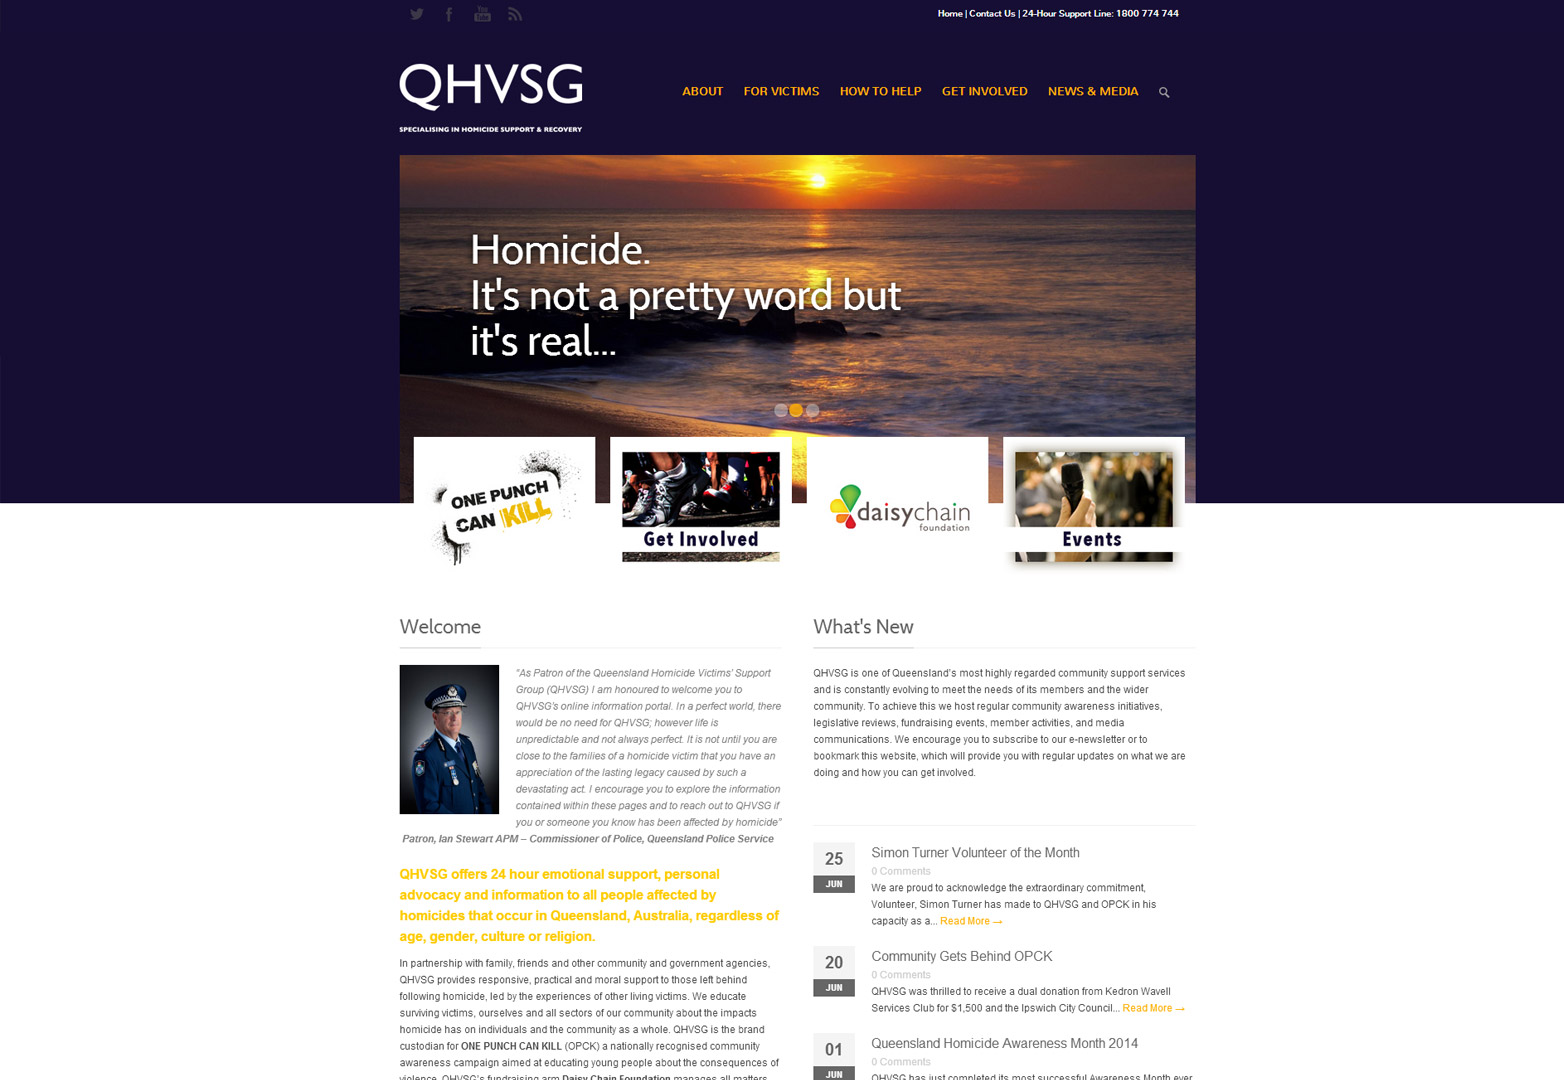 QHVSG homepage view for desktop